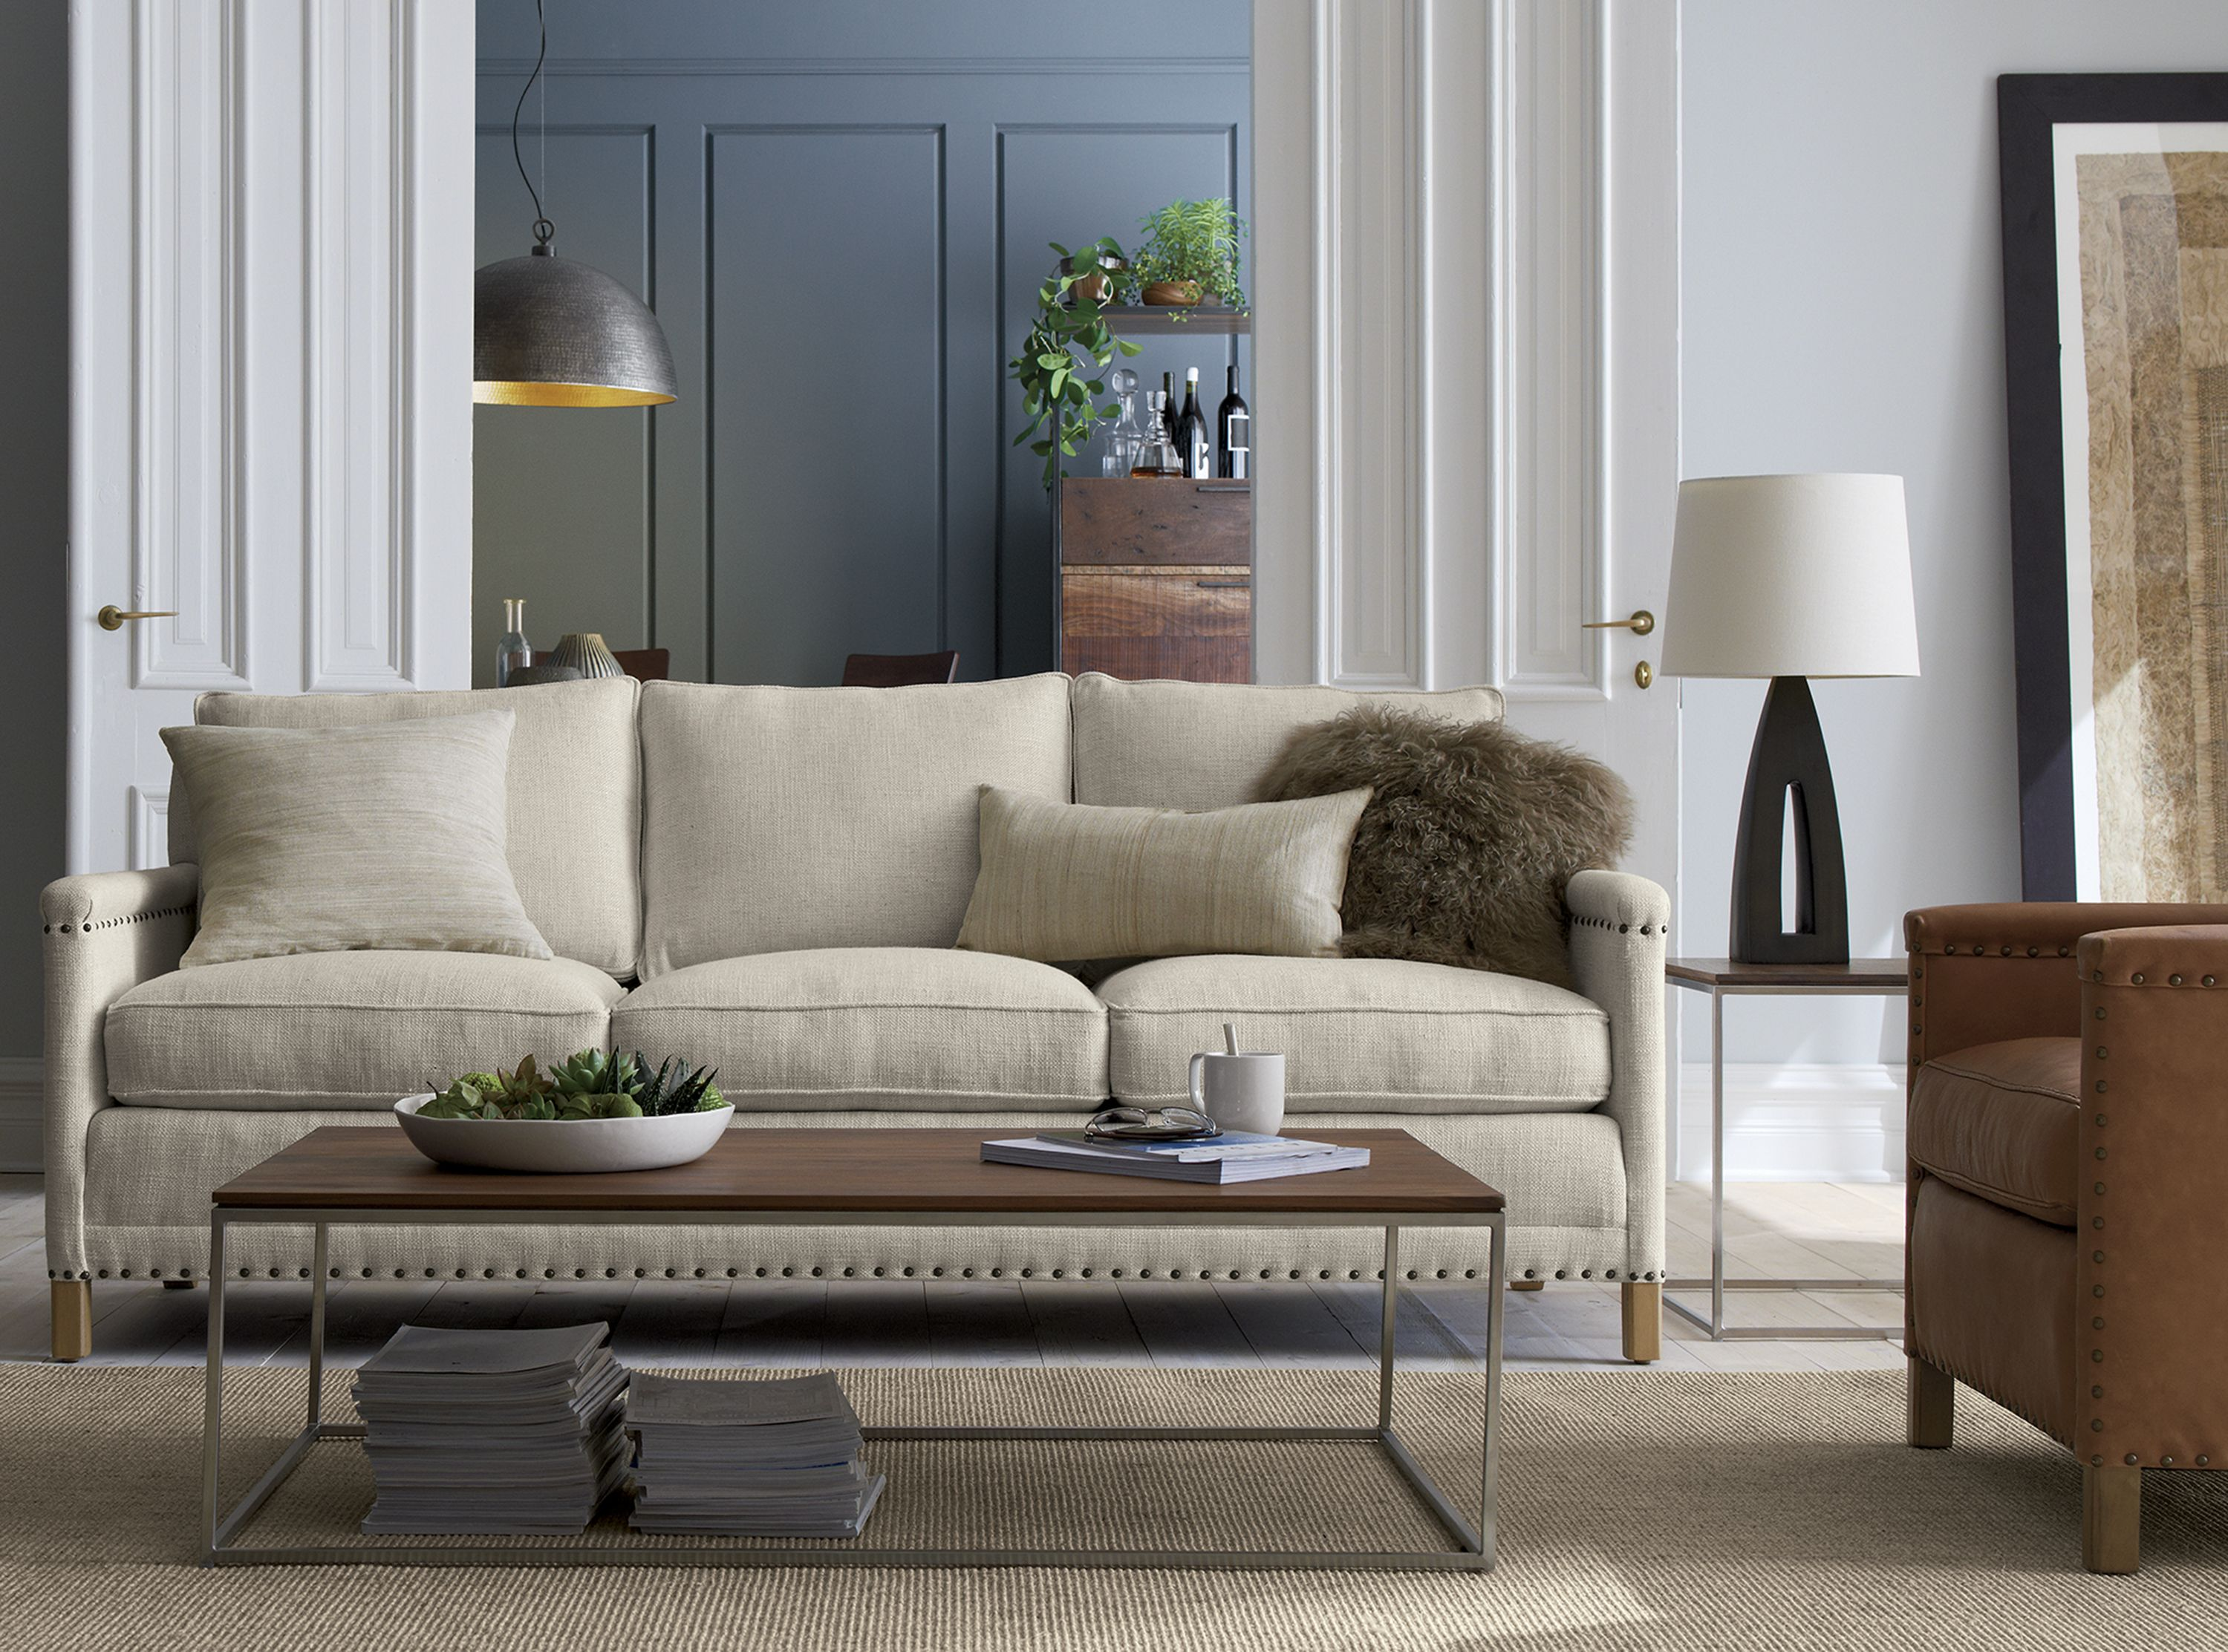 Our Trevor collection inherits the fine tradition of American craftsmanship with a clean modern style all its own. Impeccably tailored in an elegant spun-linen fabric, Trevor is tucked and tacked with natural brass nailheads, each precisely placed by hand. The sofa's comfort level is truly gold-standard, crafted with the support of eight-way, hand-tied springs, seat cushions lofted with down.